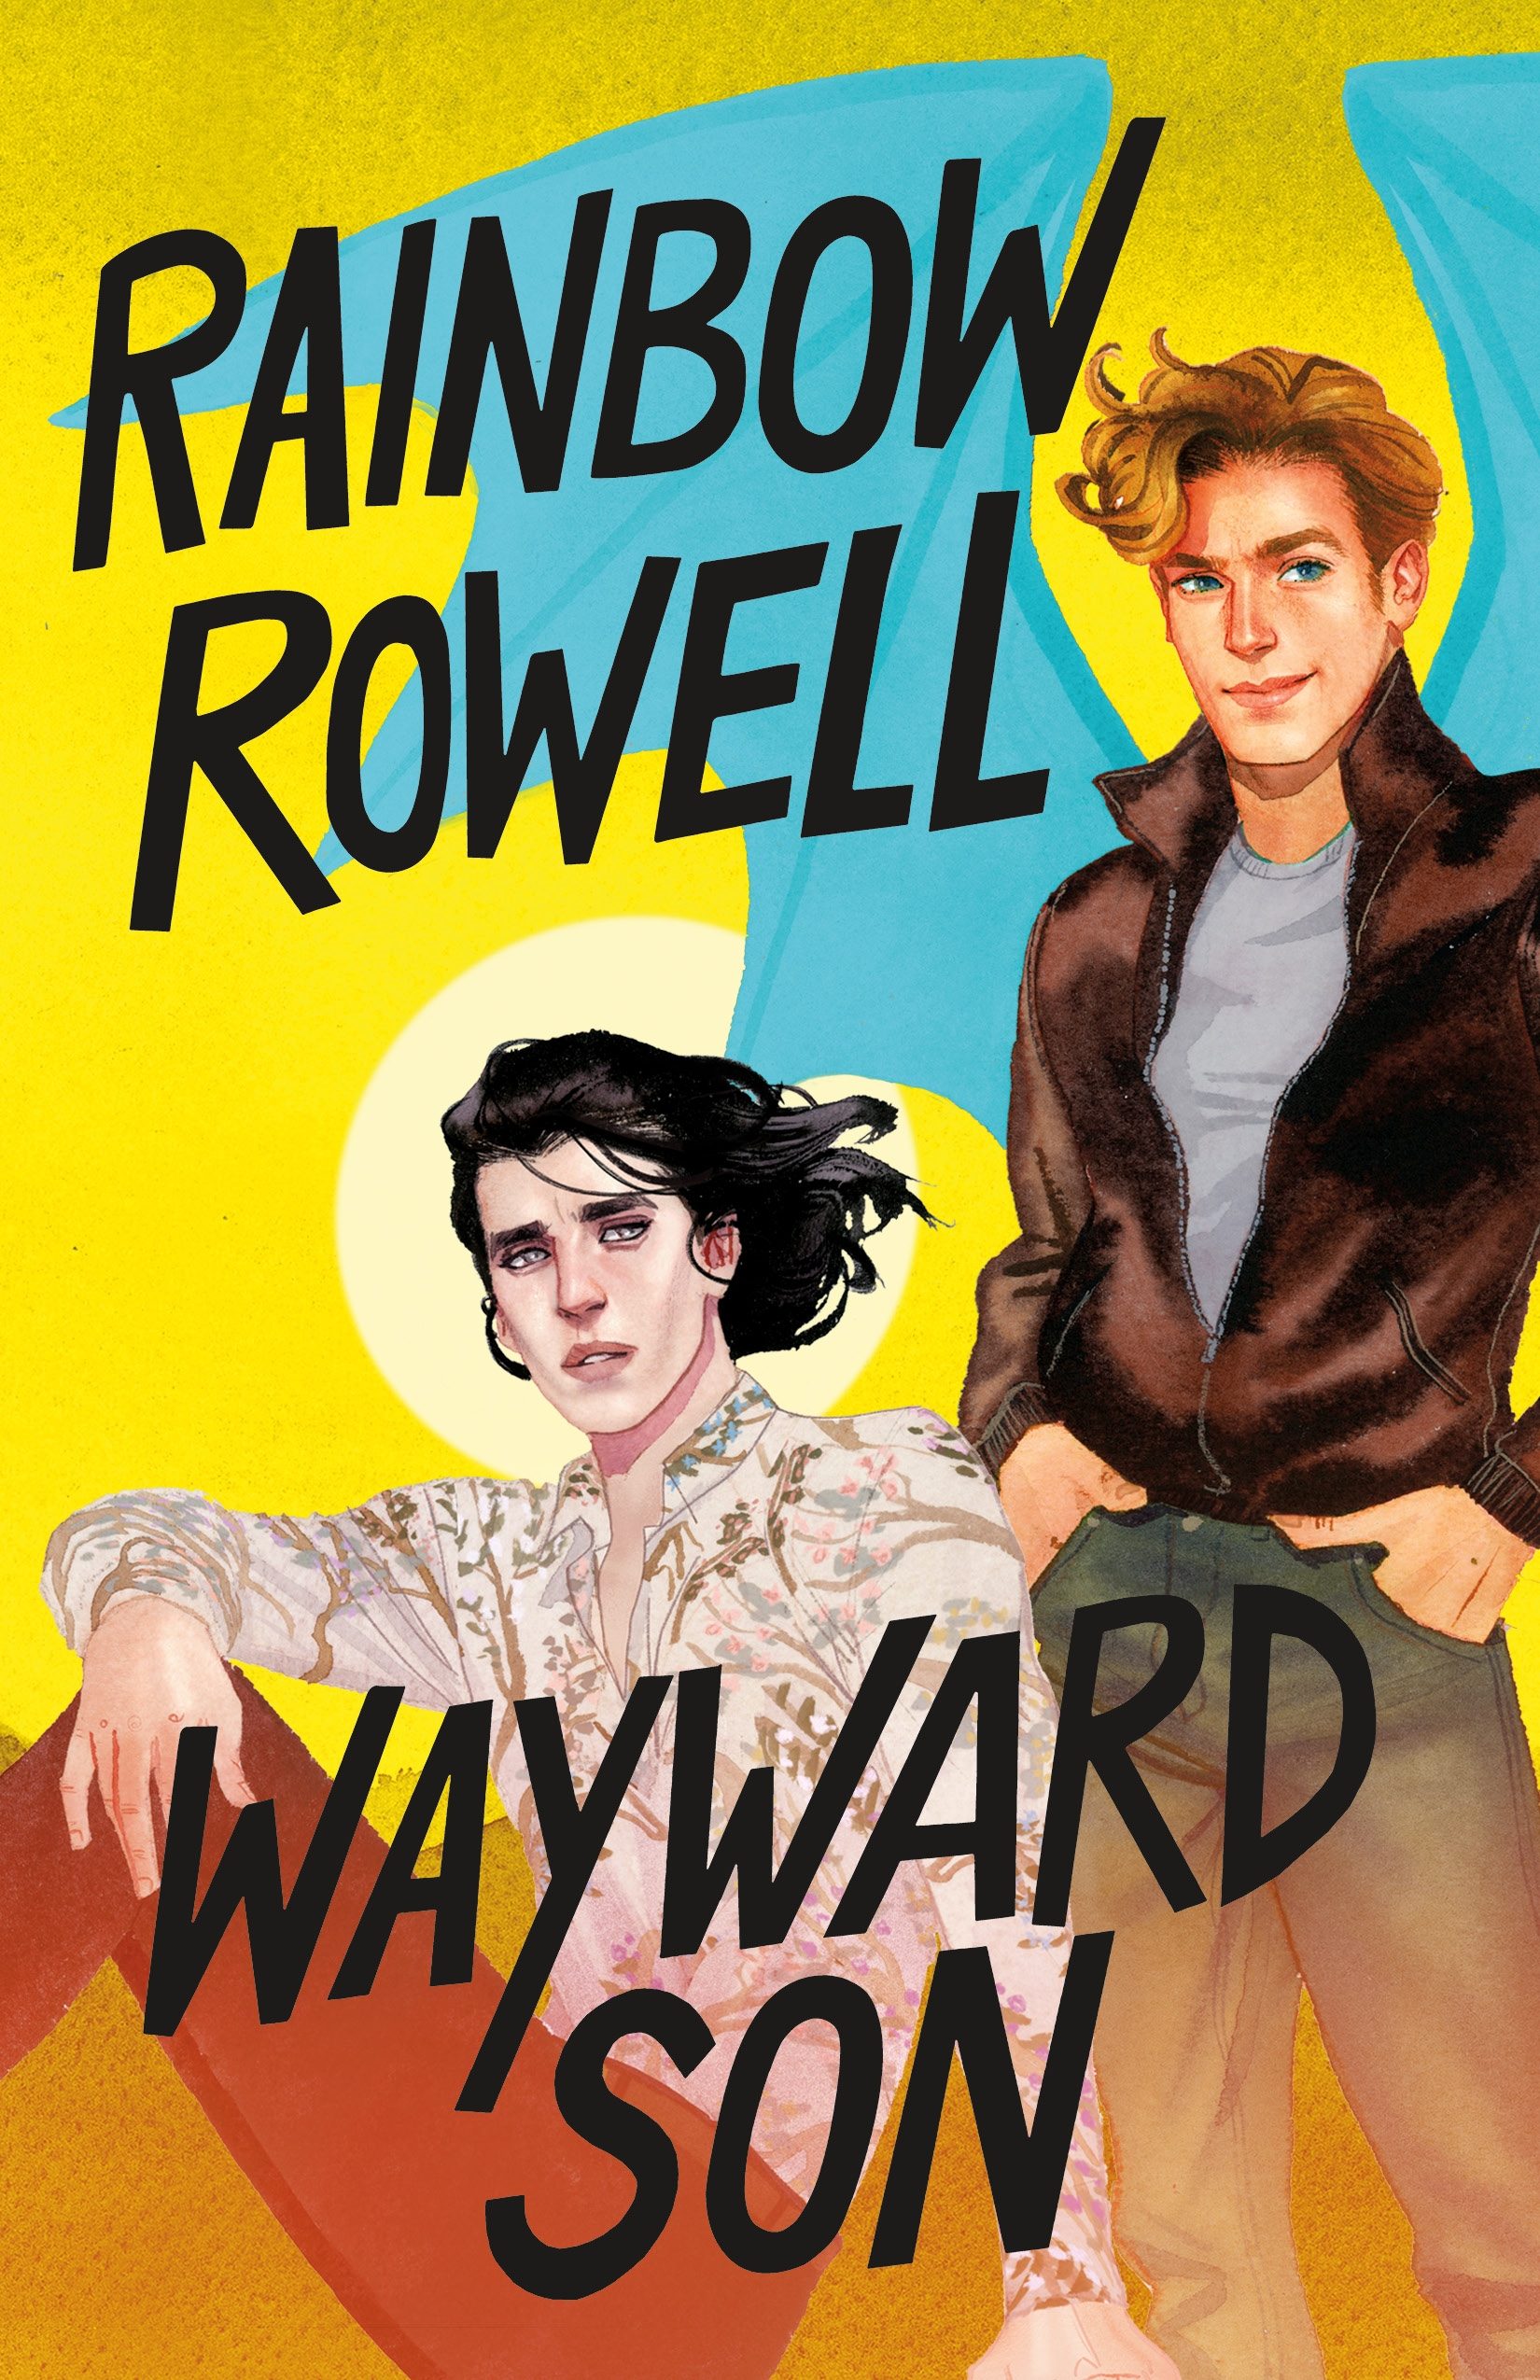 Rainbow Rowell Answers: What Happens After the Chosen One Saves the Day?